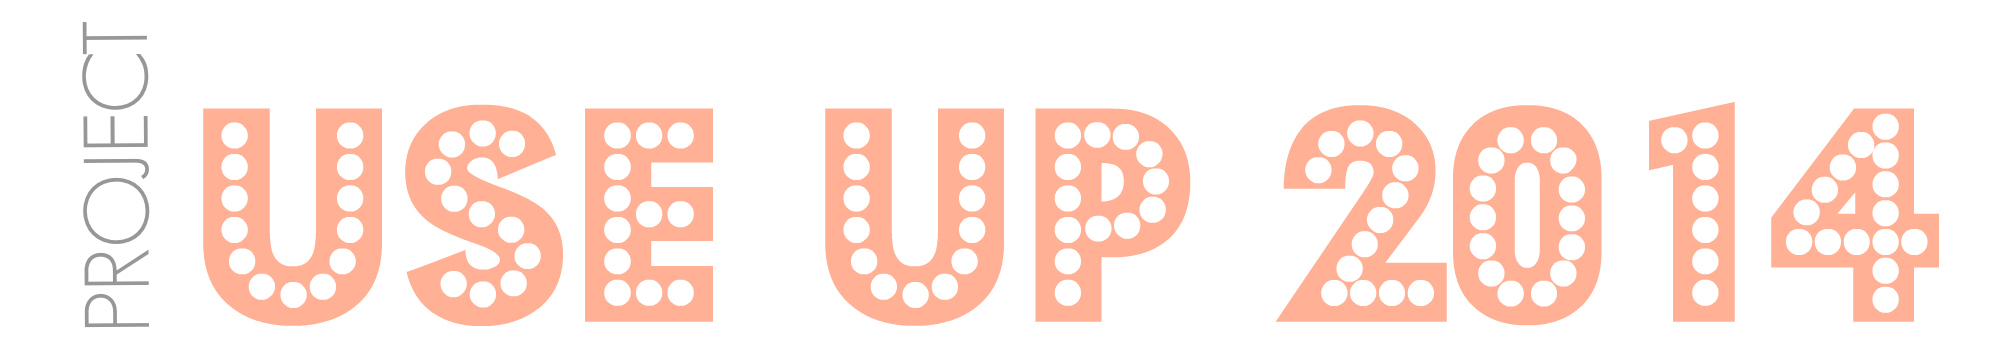 Use up 2014